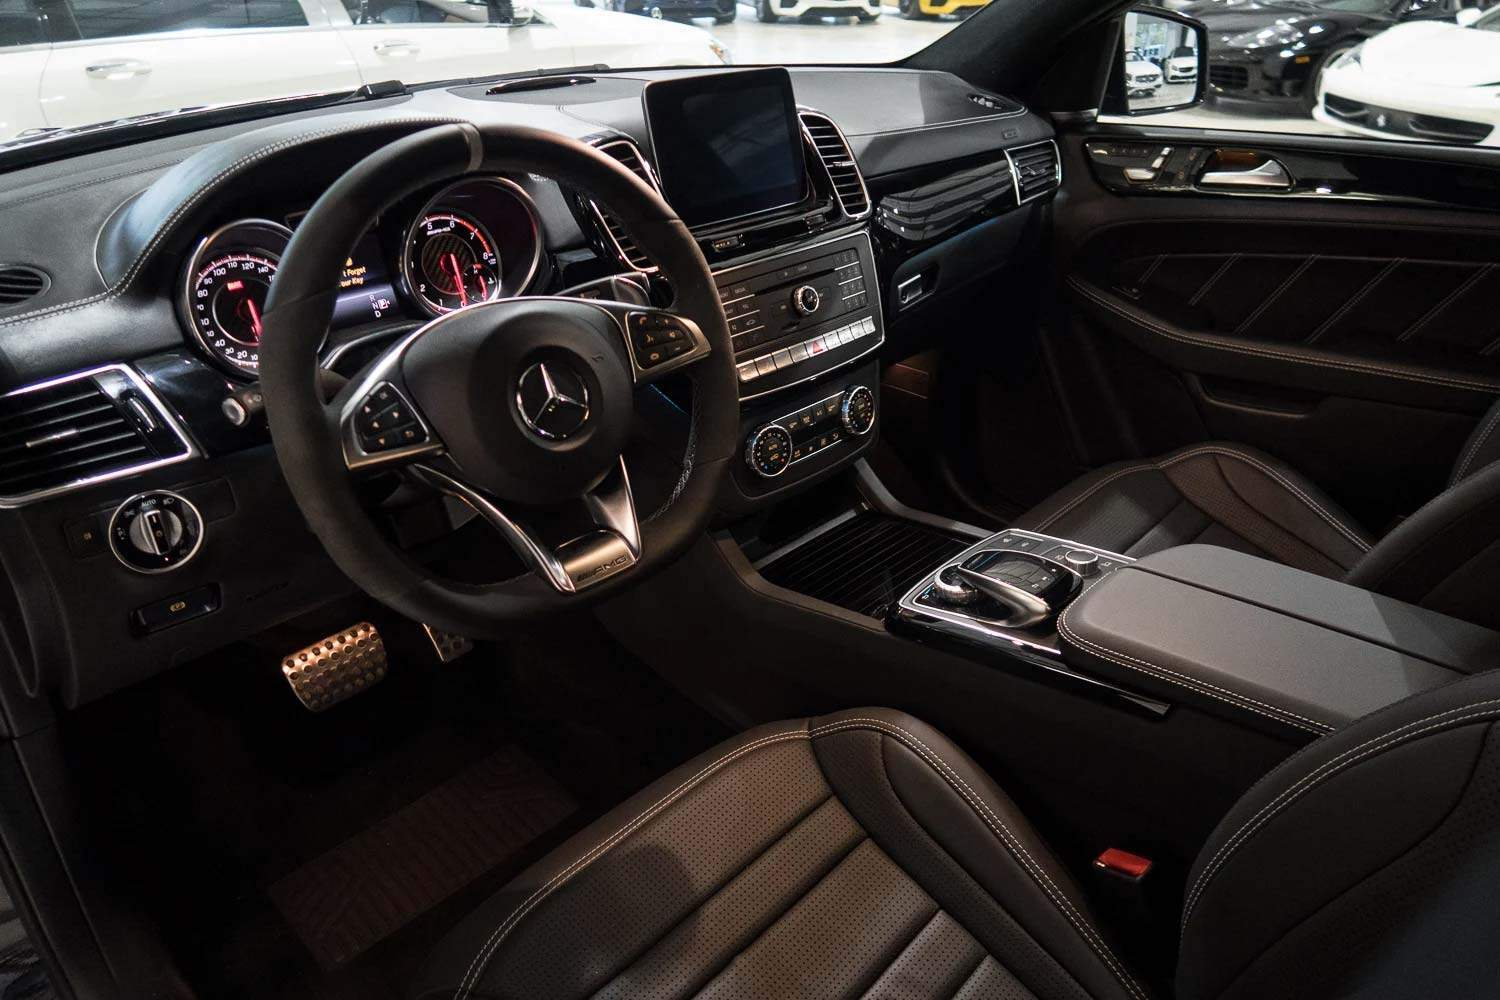 2018 mercedes benz amg gle 63 s for sale in san antonio new 2018 mercedes benz amg gle 63 s in. Black Bedroom Furniture Sets. Home Design Ideas